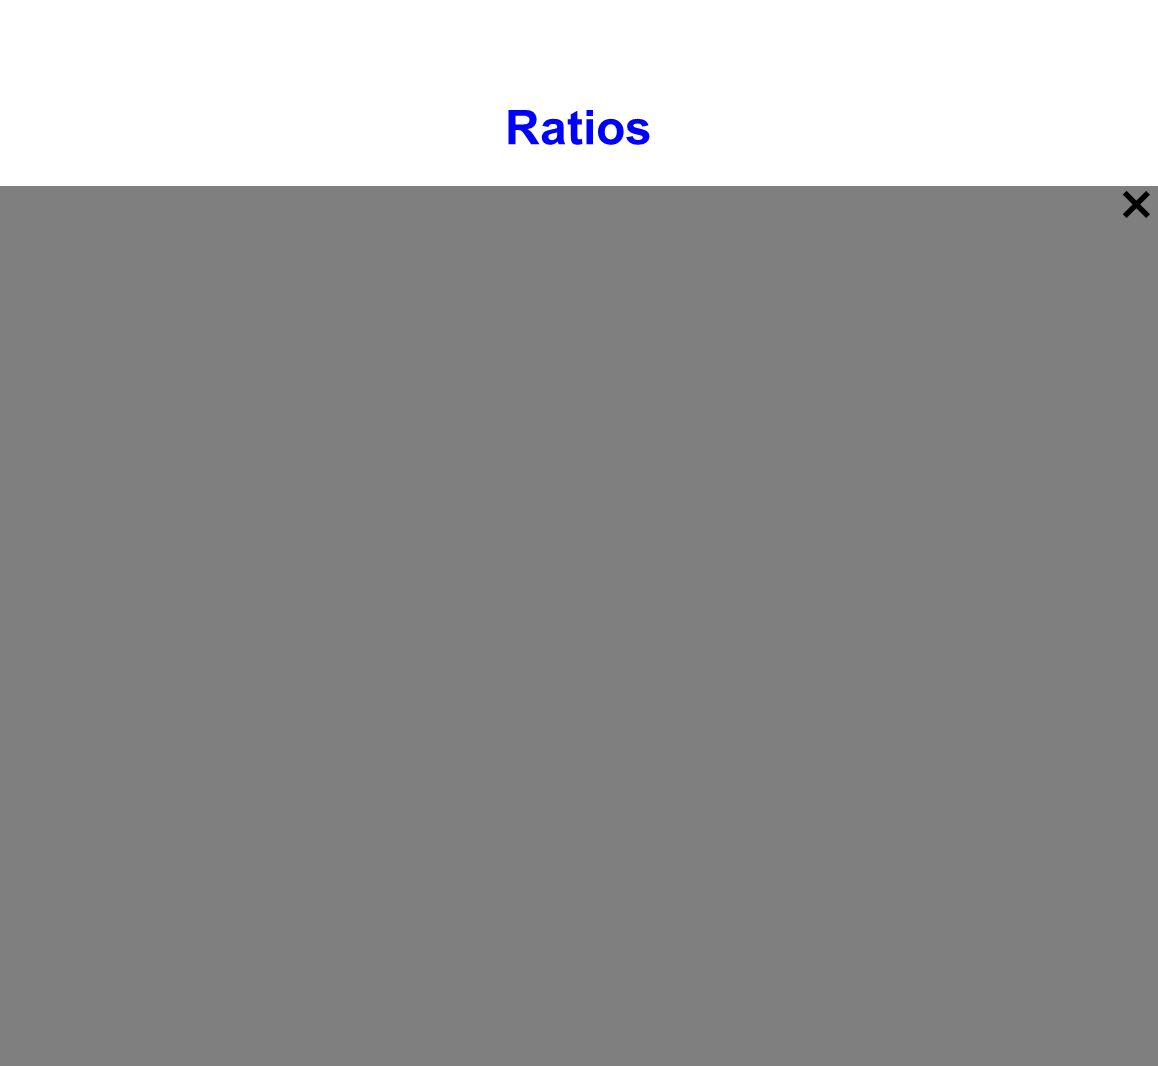 28 Solve the proportion using equivalent ratios?